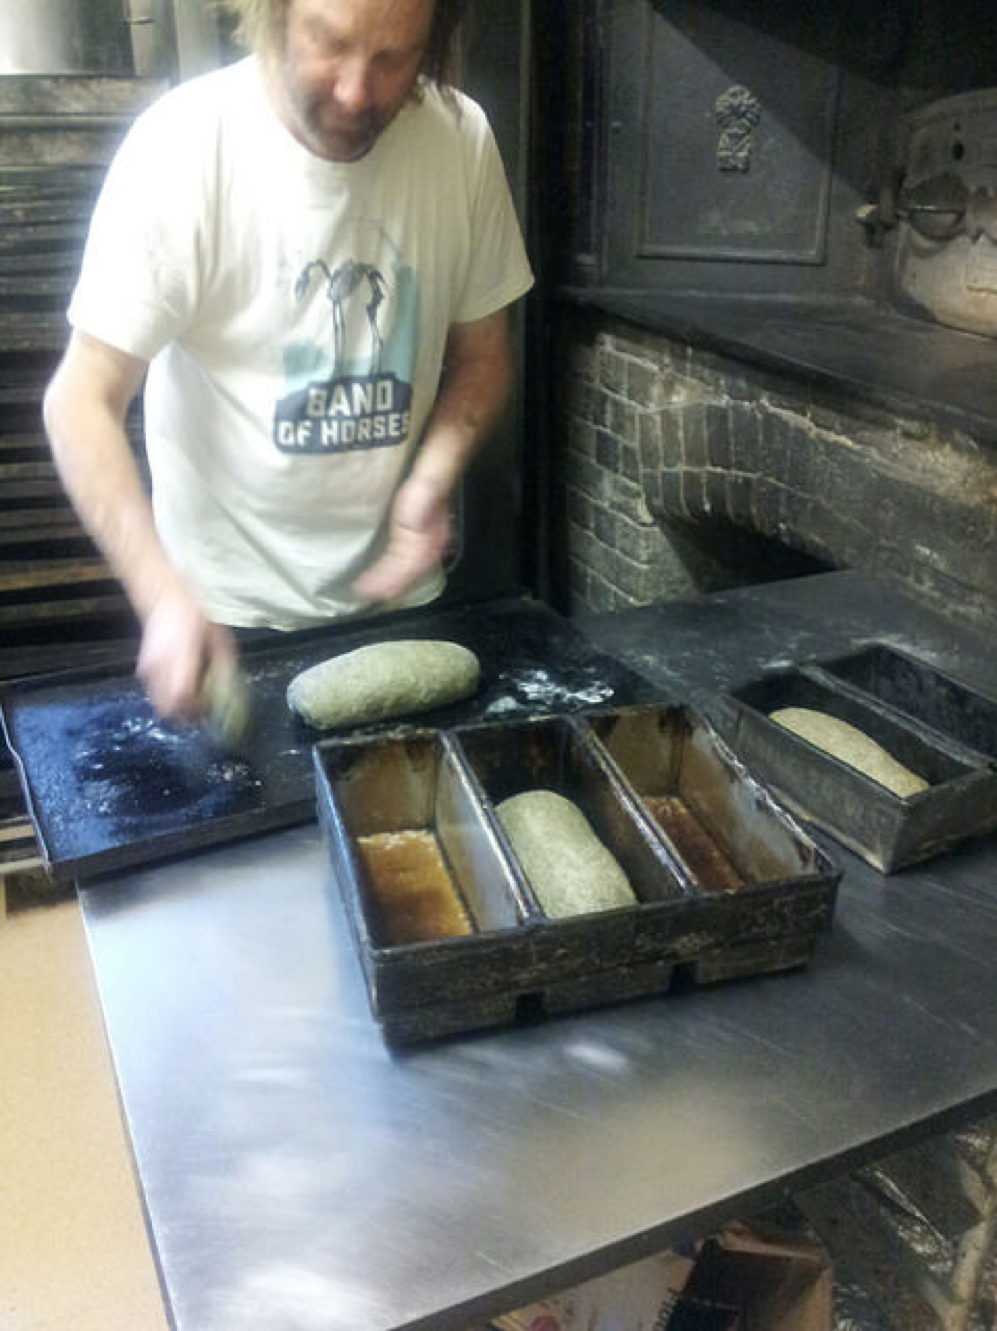 Dave Standfield prepares some hemp seed enriched loaves at the Rylstone bakery.